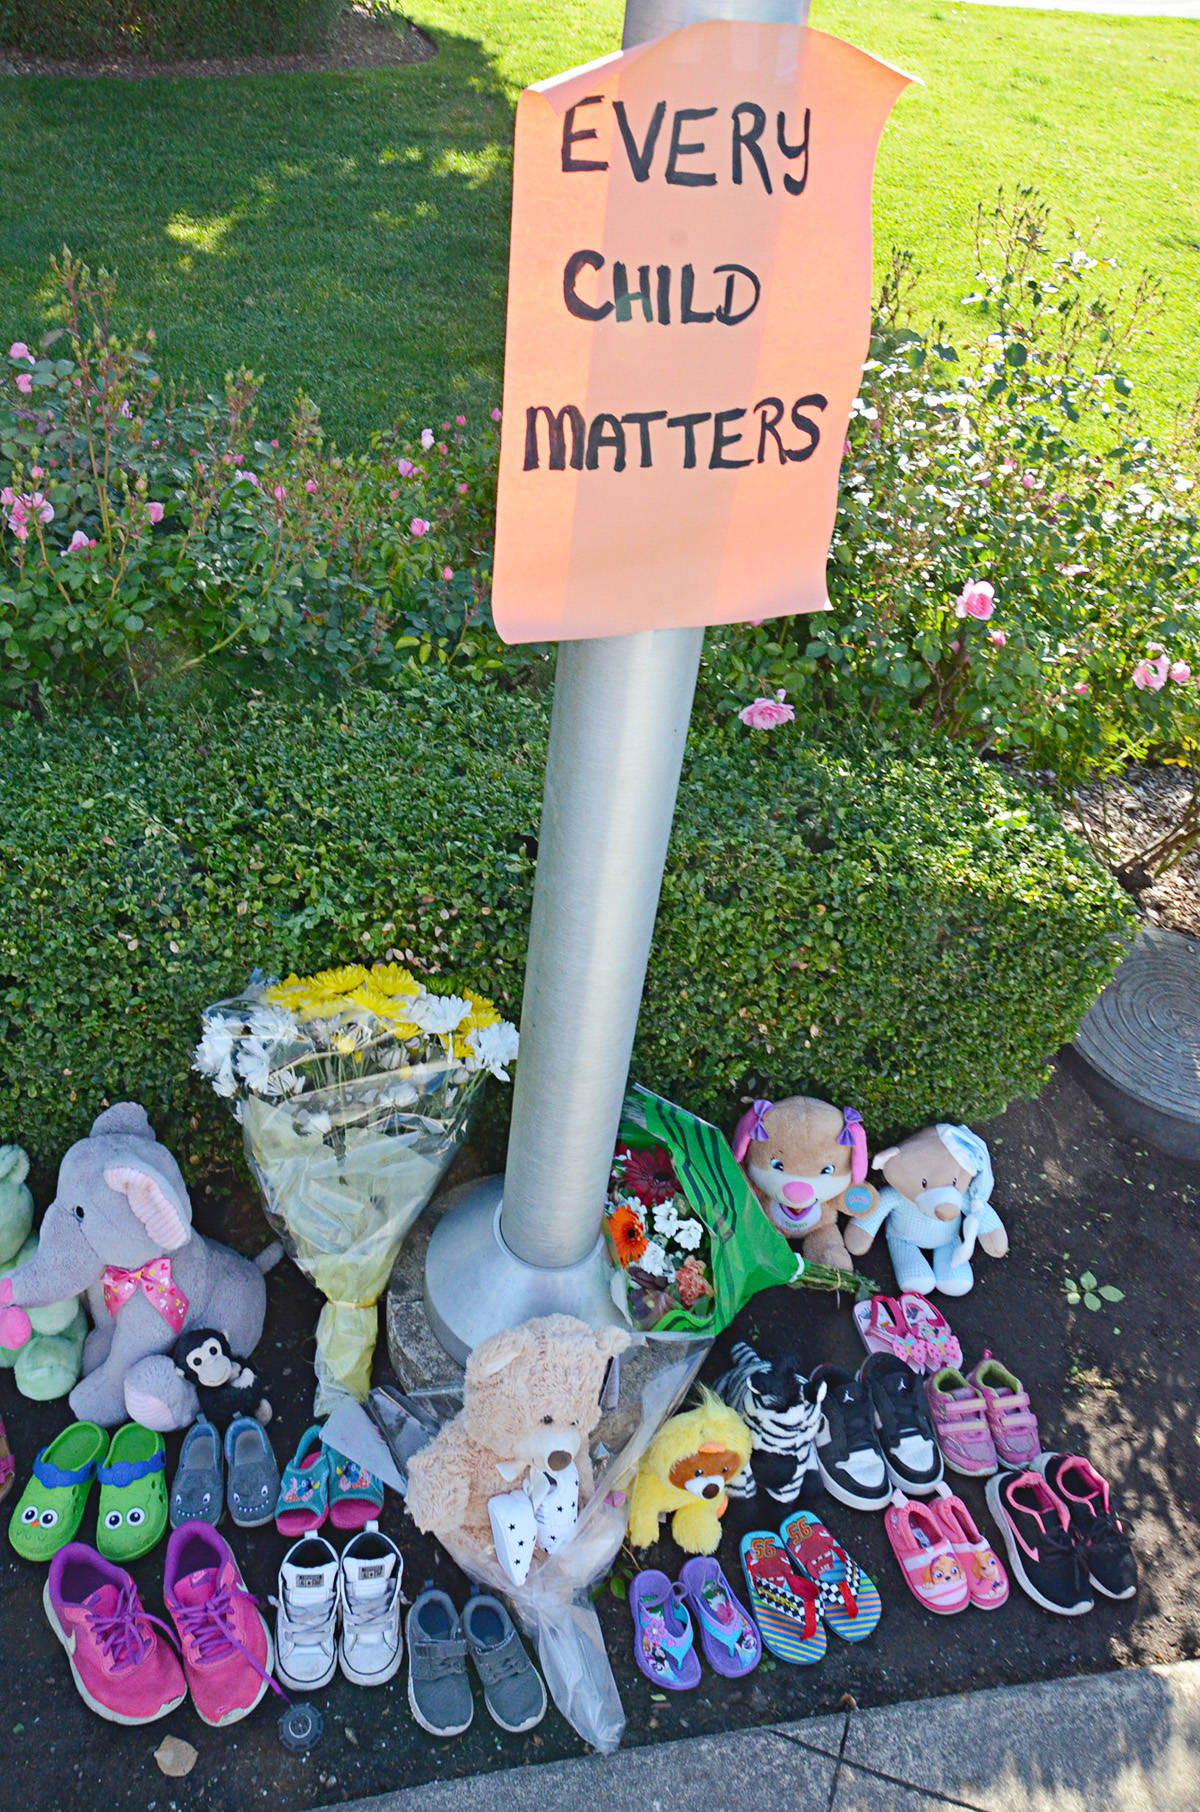 A memorial to the 215 dead children buried at the Kamloops residential school has been set up in Douglas Park near the cenotaph. (Heather Colpitts/Langley Advance Times)